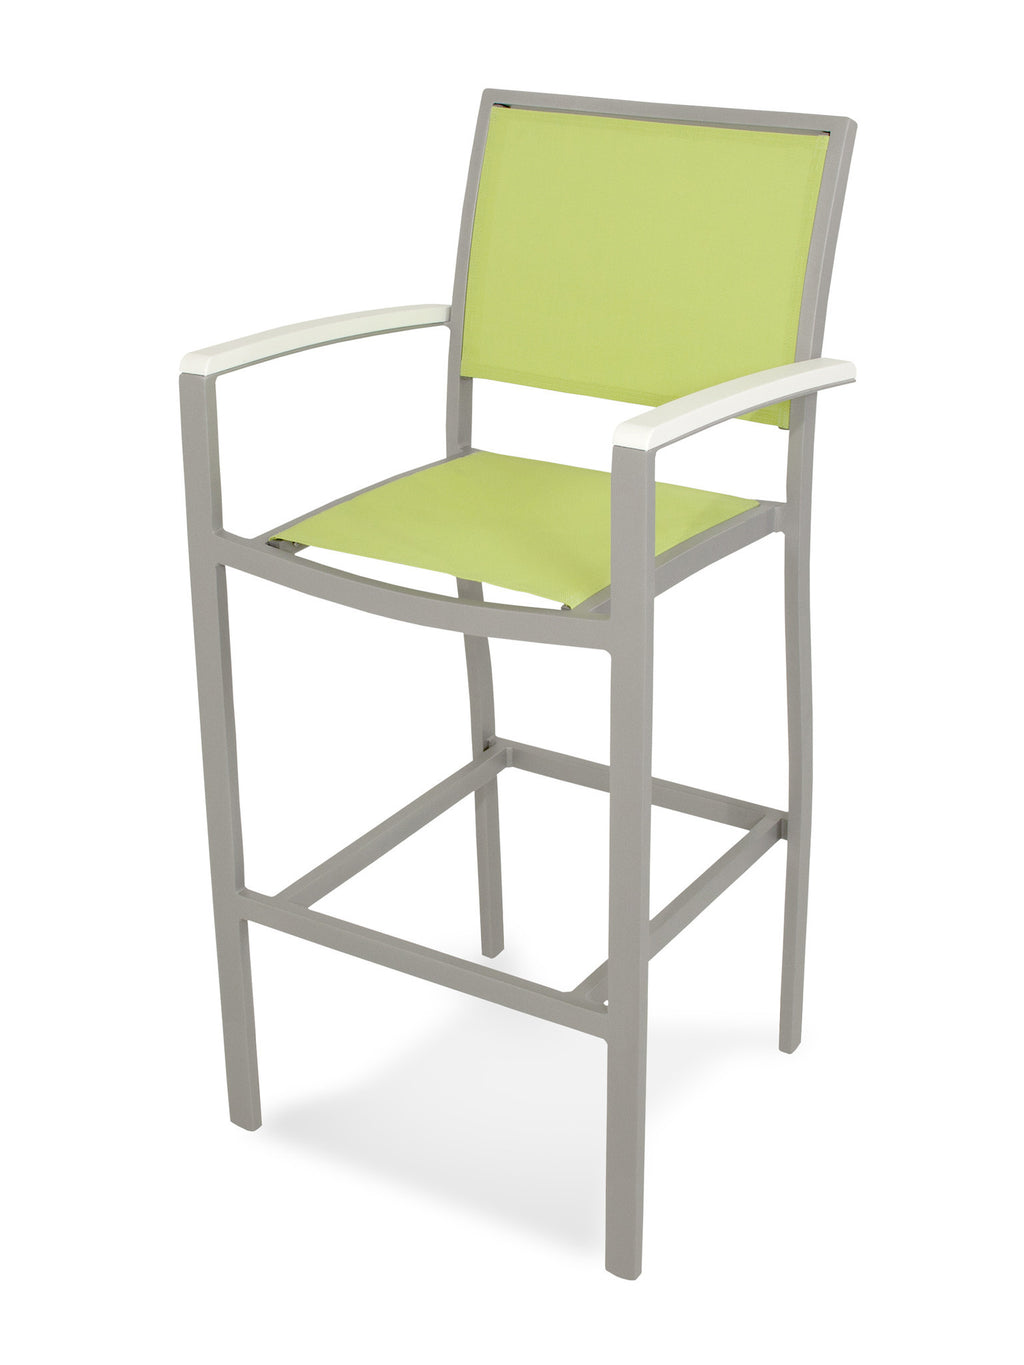 A292-11MWH904 Bayline Bar Arm Chair in Textured Silver and White with an Avocado Sling